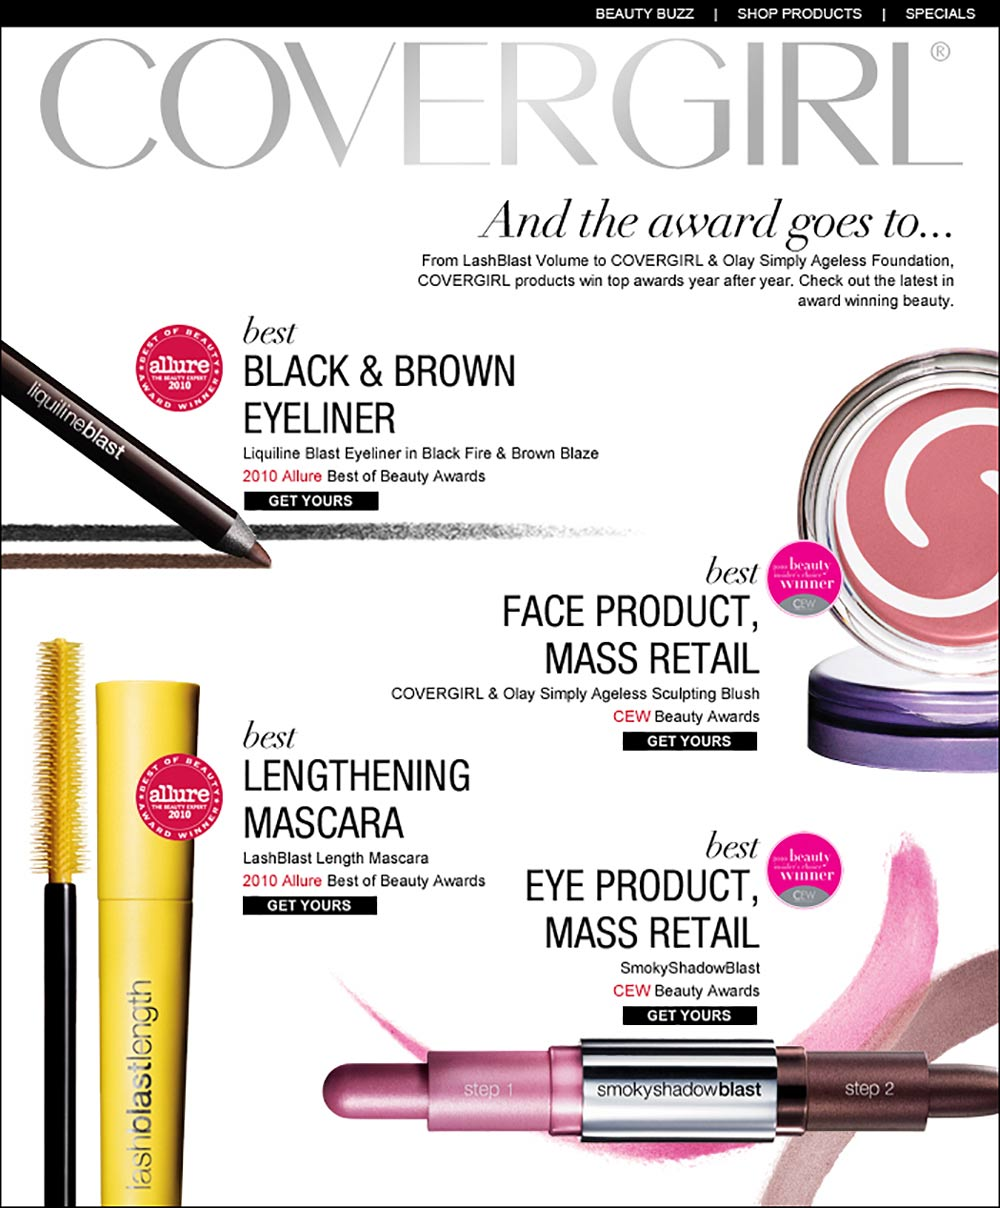 Covergirl: email design